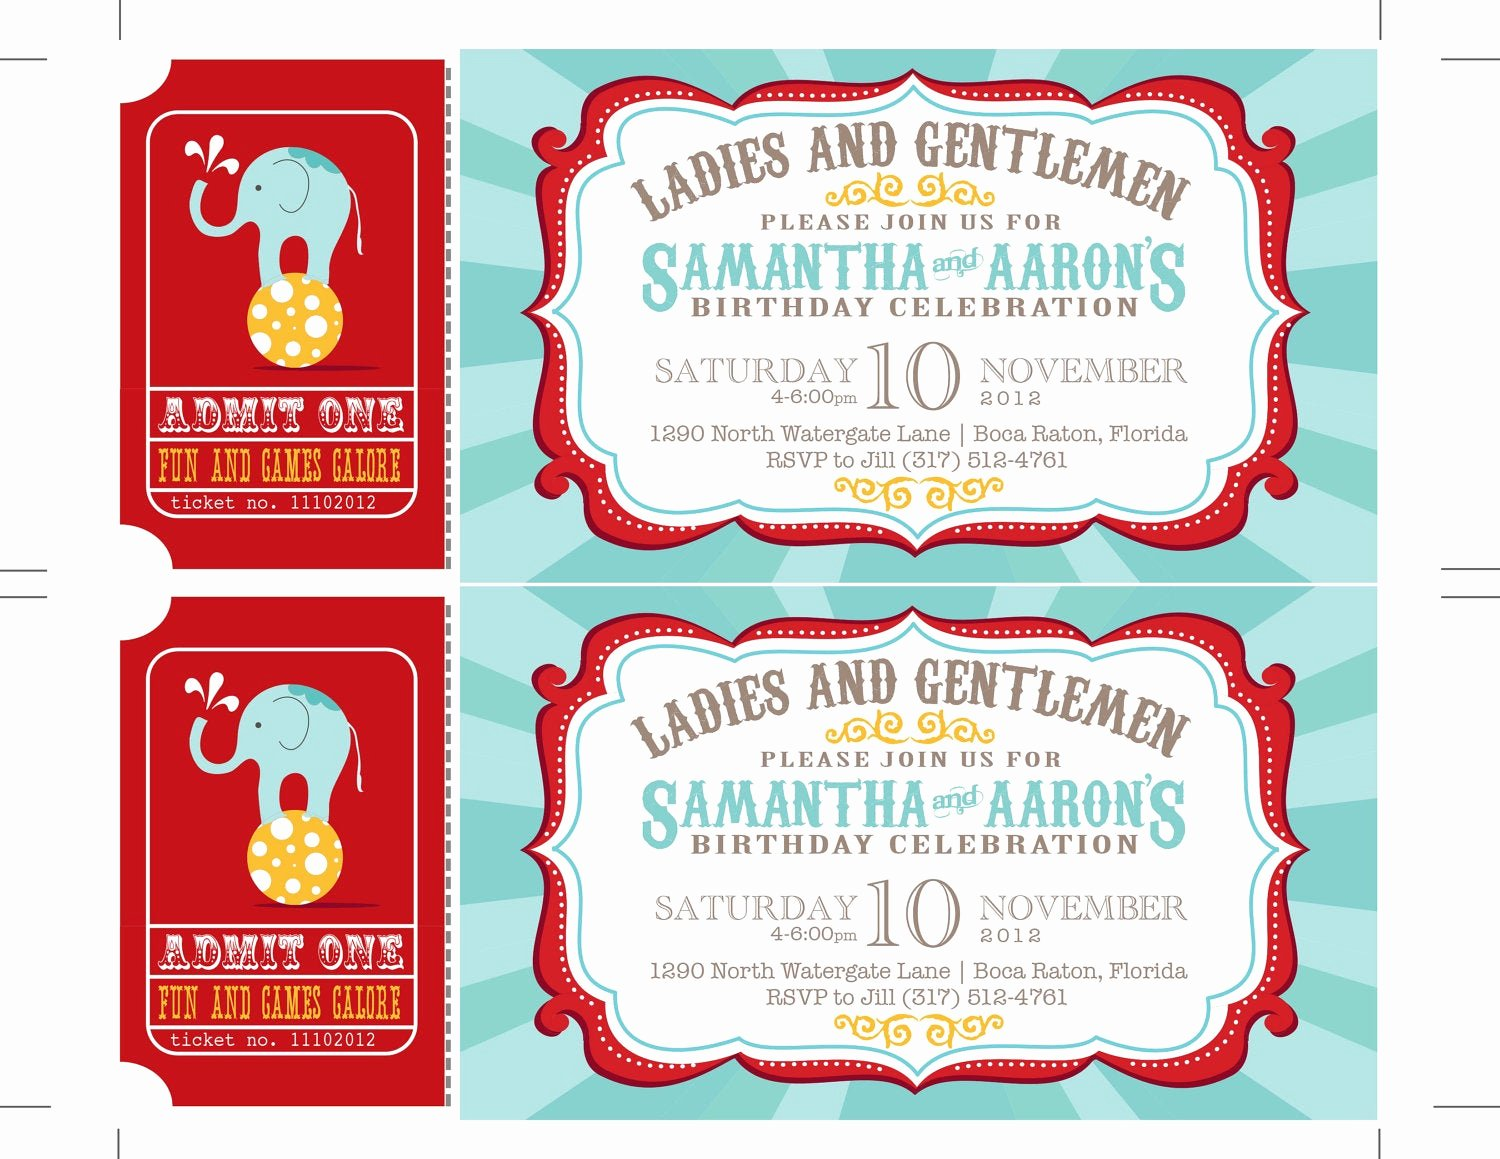 Carnival Ticket Invitations Beautiful Reserved Carnival Invitations Circus Invitations Ticket